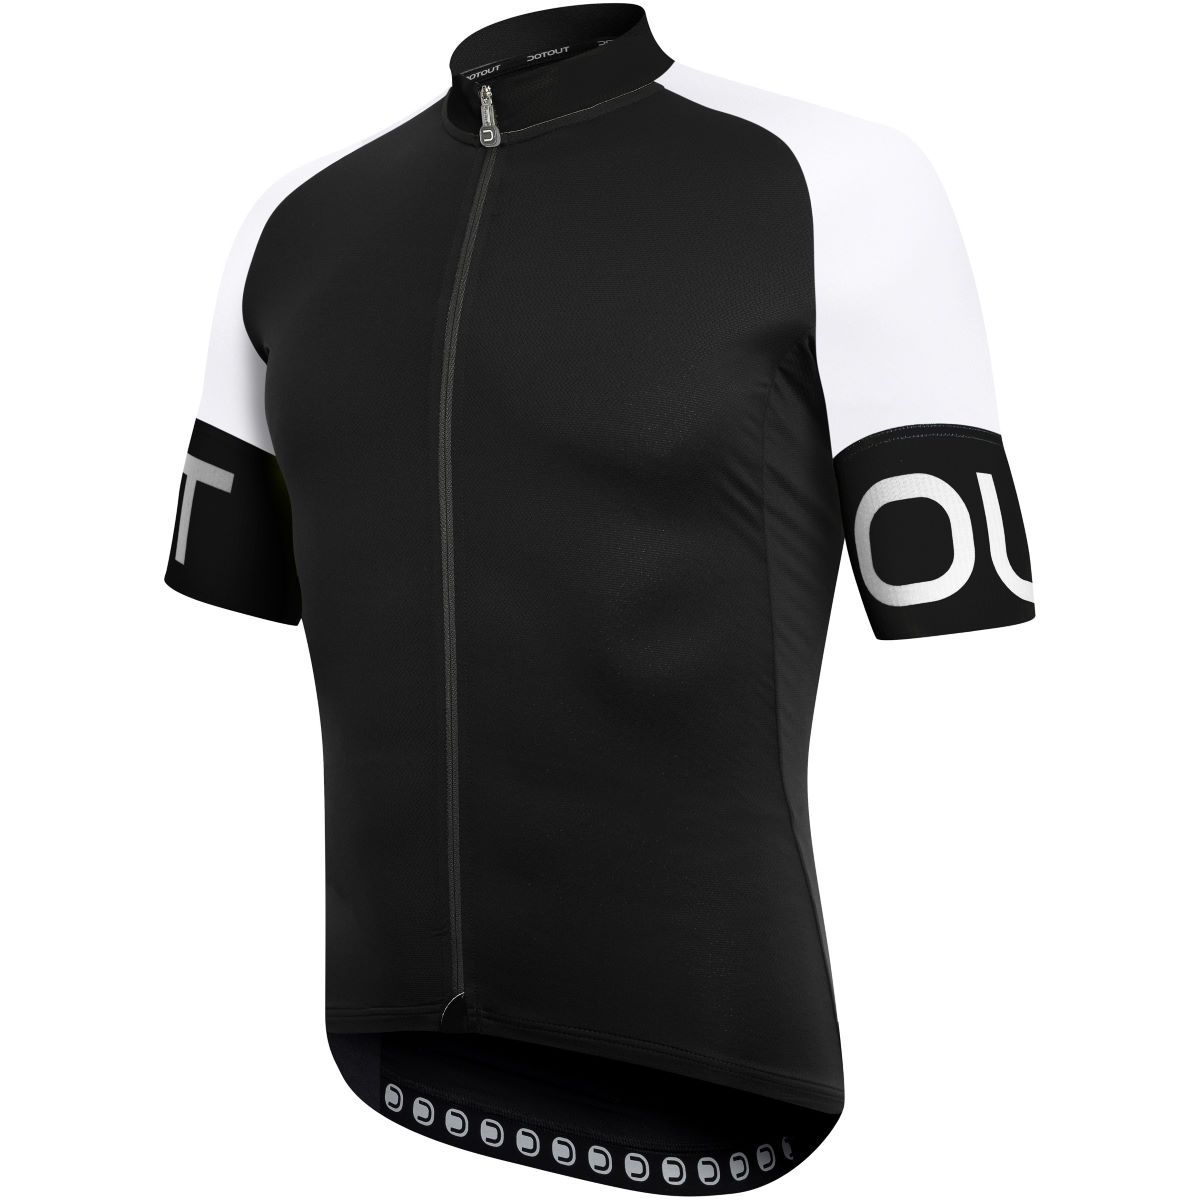 Maillot Dotout Pure - S Black - White Maillots